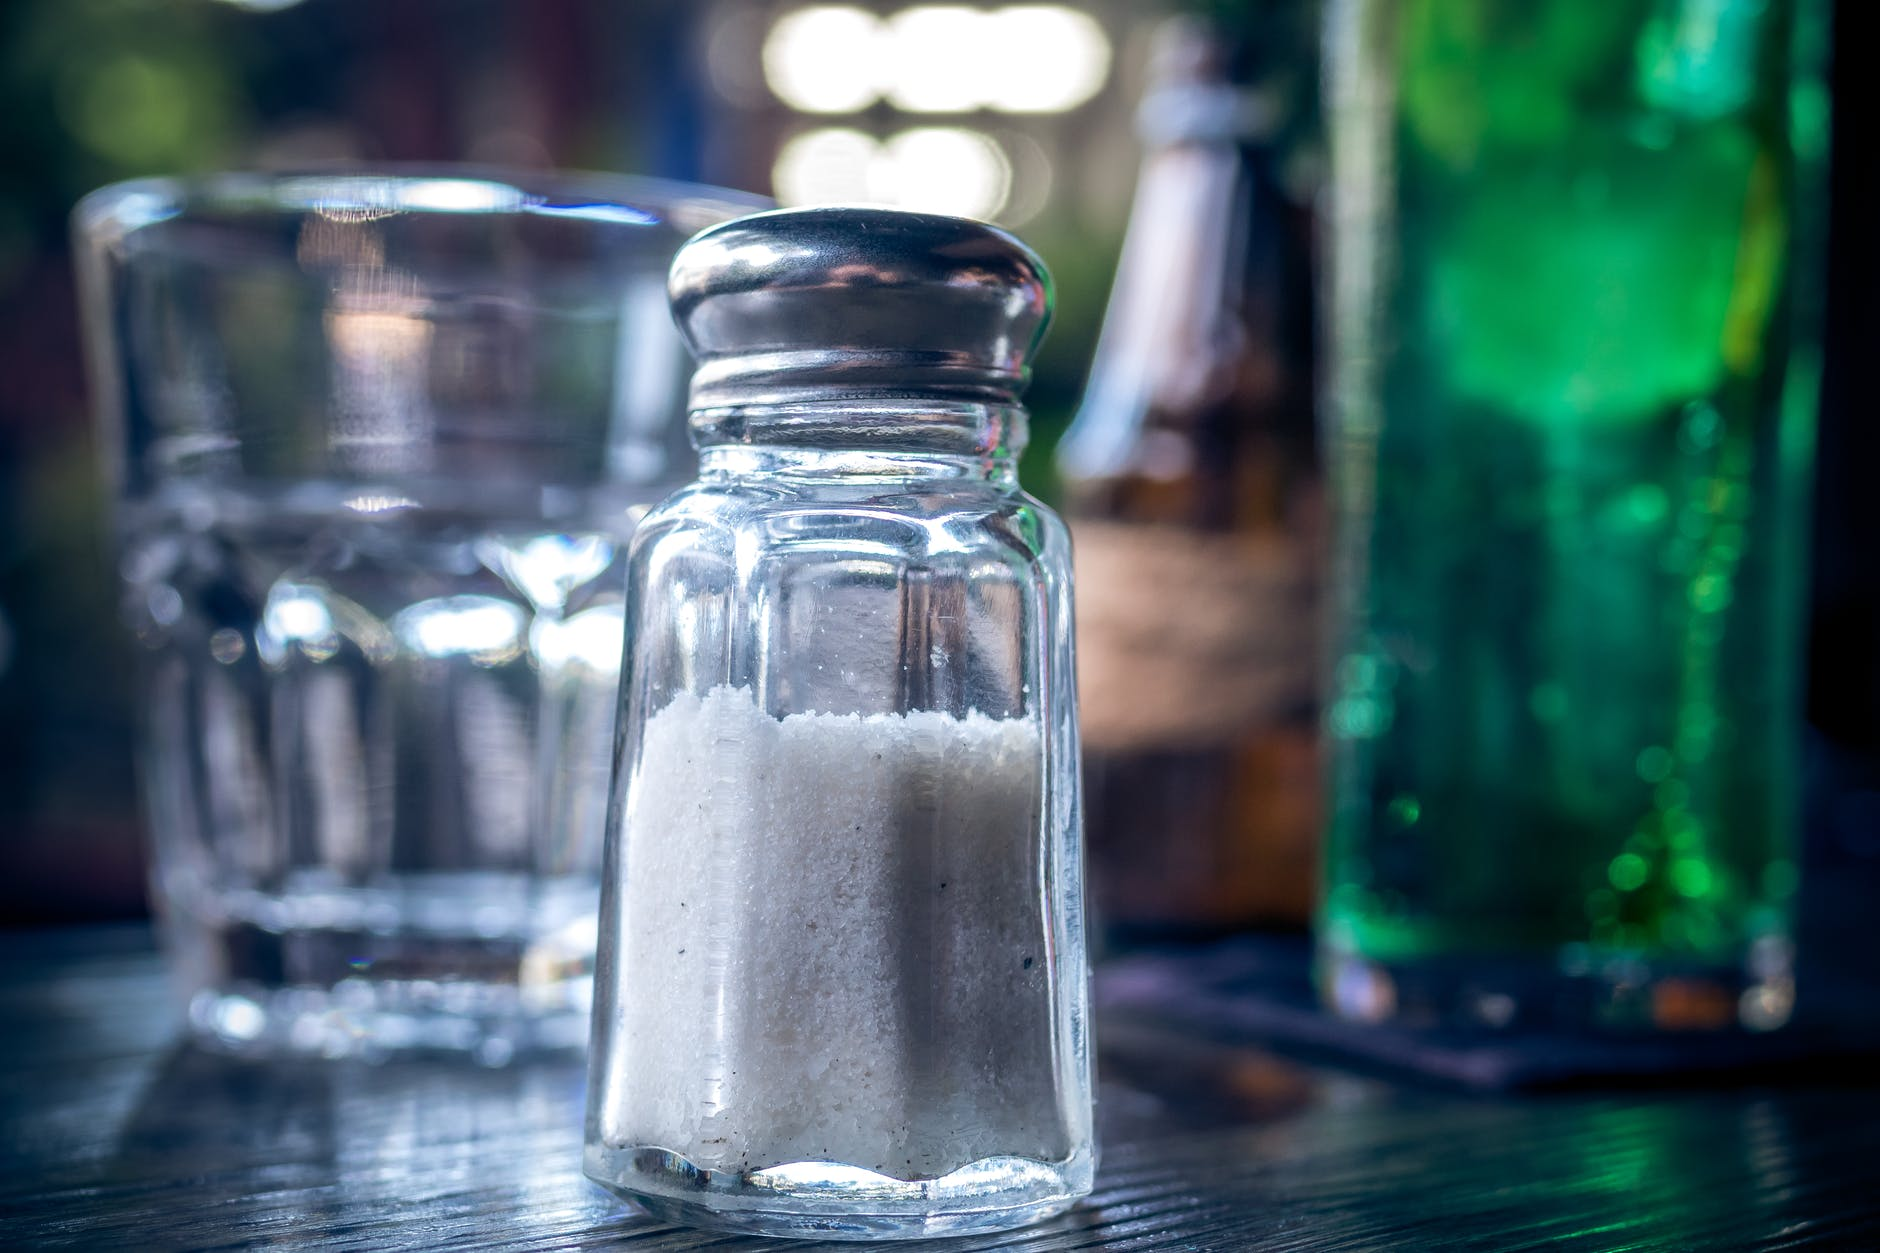 Salt with alcohol background